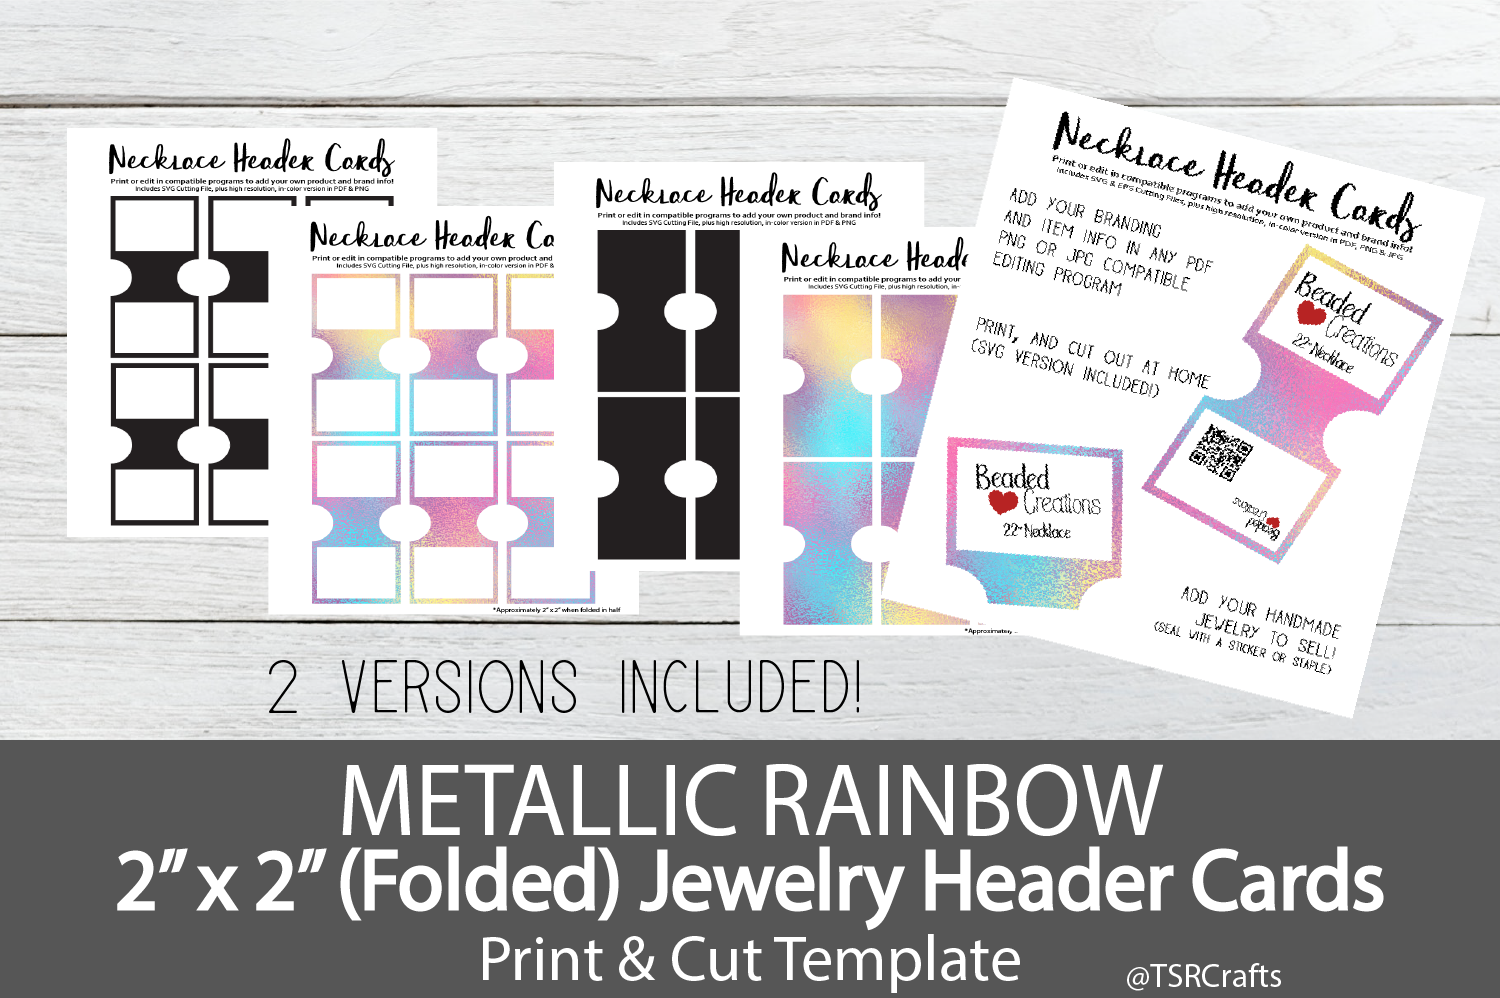 Jewelry Header Cards for Necklace - Metallic Rainbow example image 1